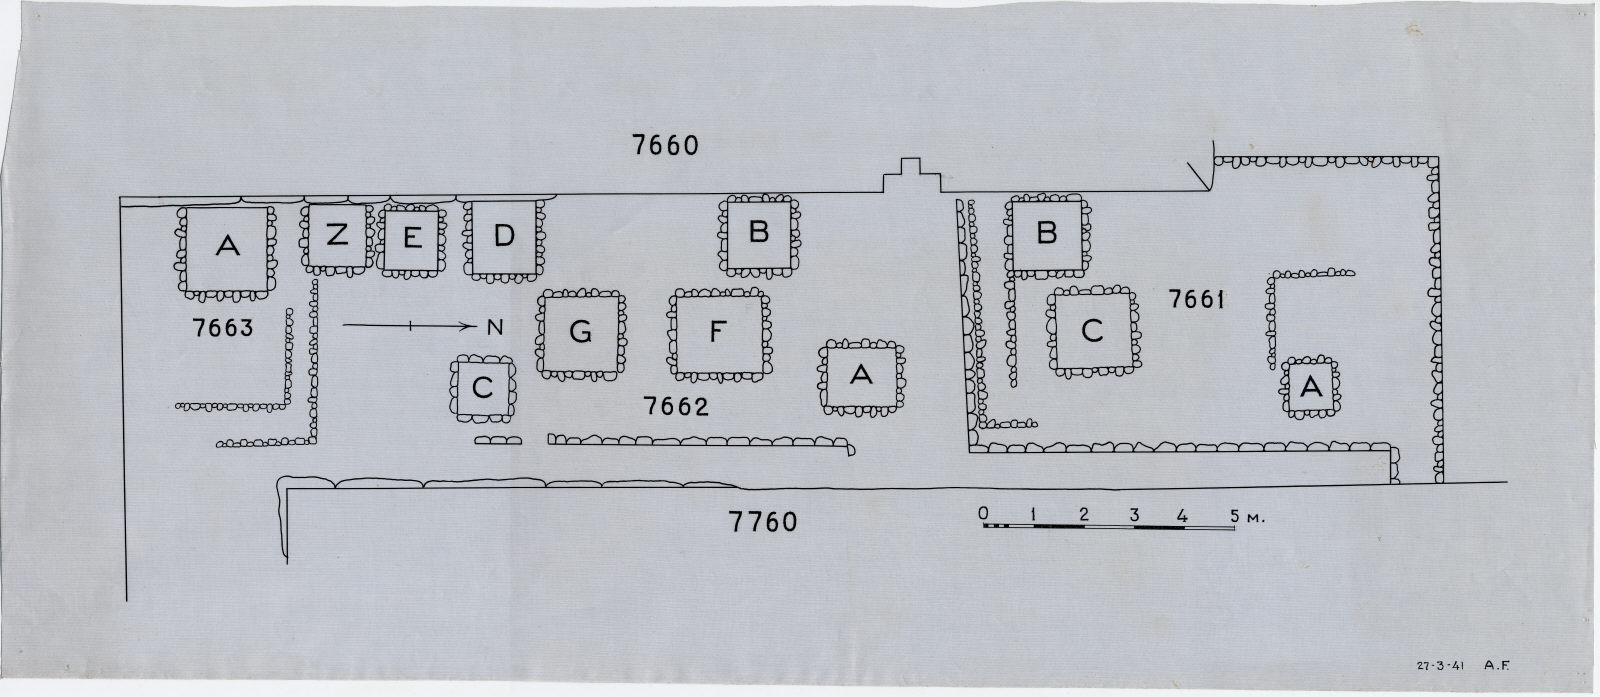 Maps and plans: Plan of Cemetery G 7000, E end